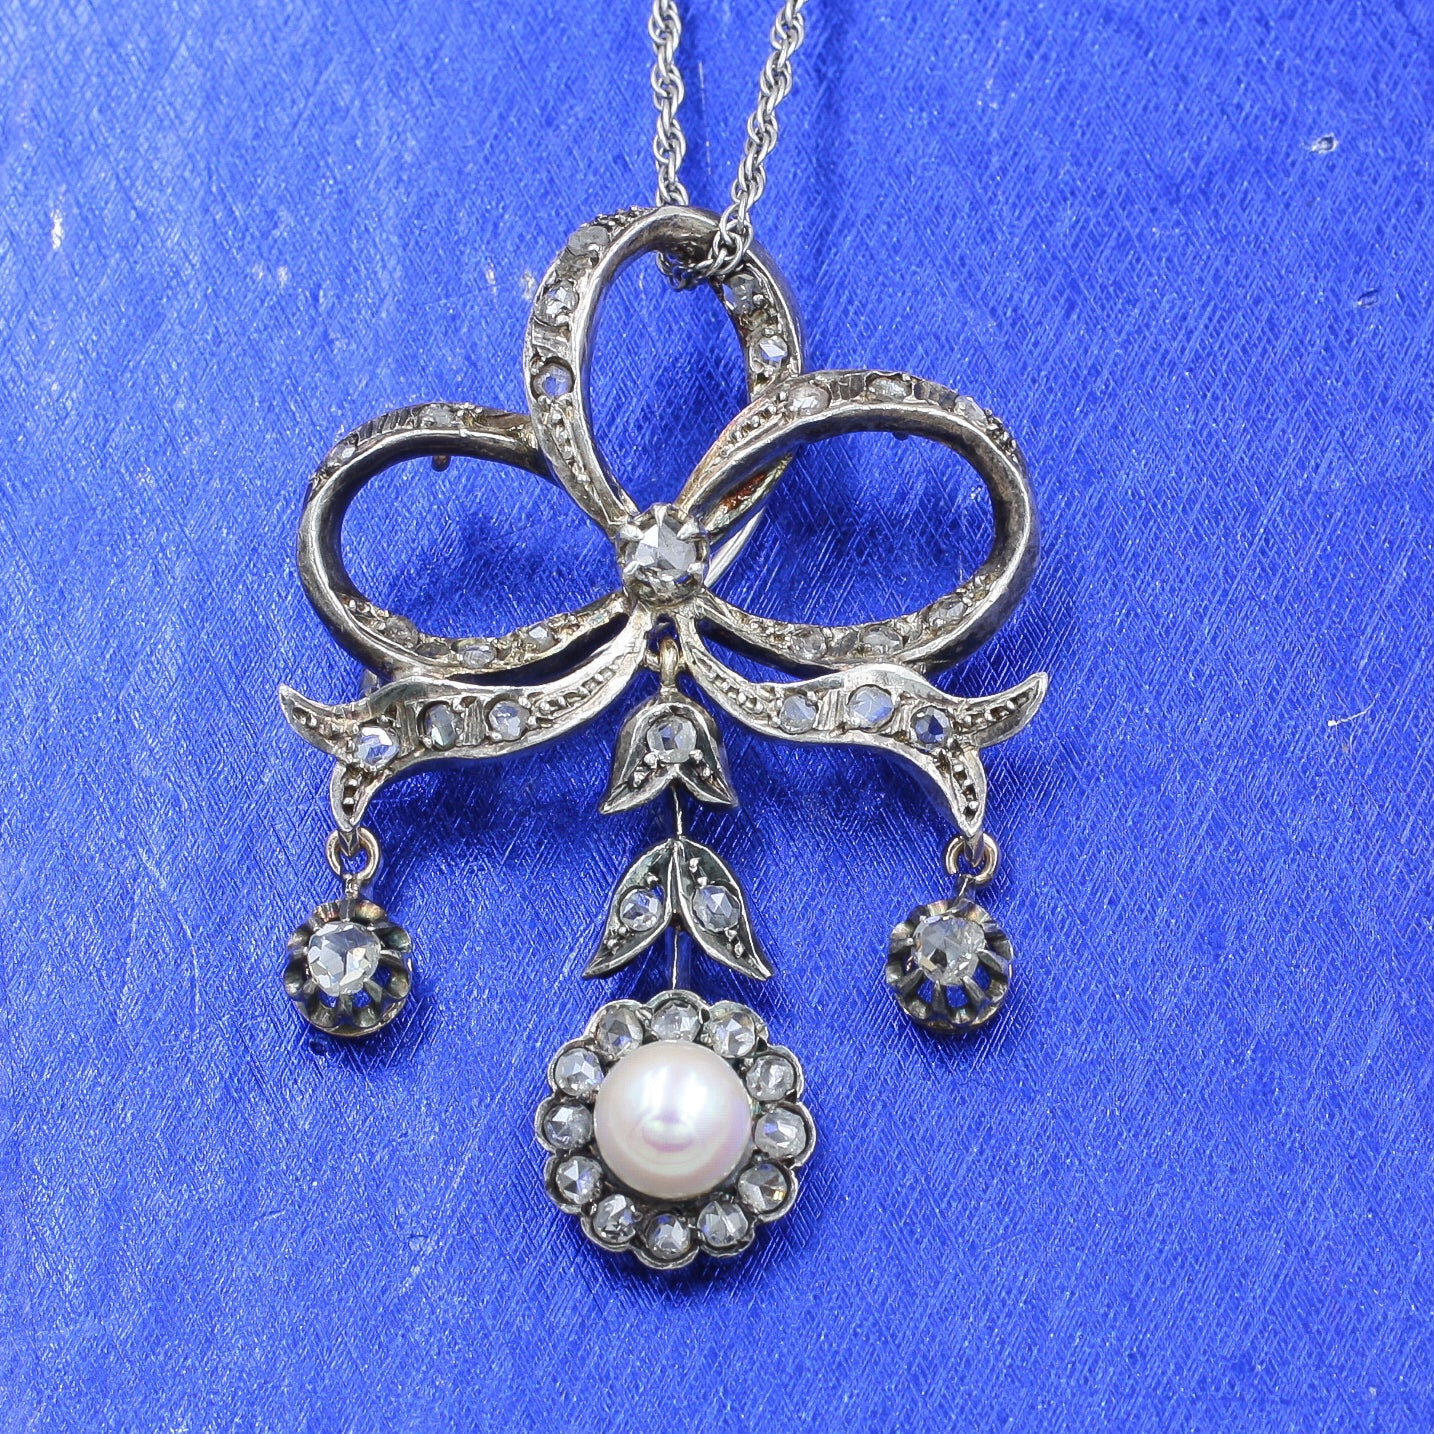 c1910-30 Rose Cut Diamond Bow and Flower Drop Pendant Brooch